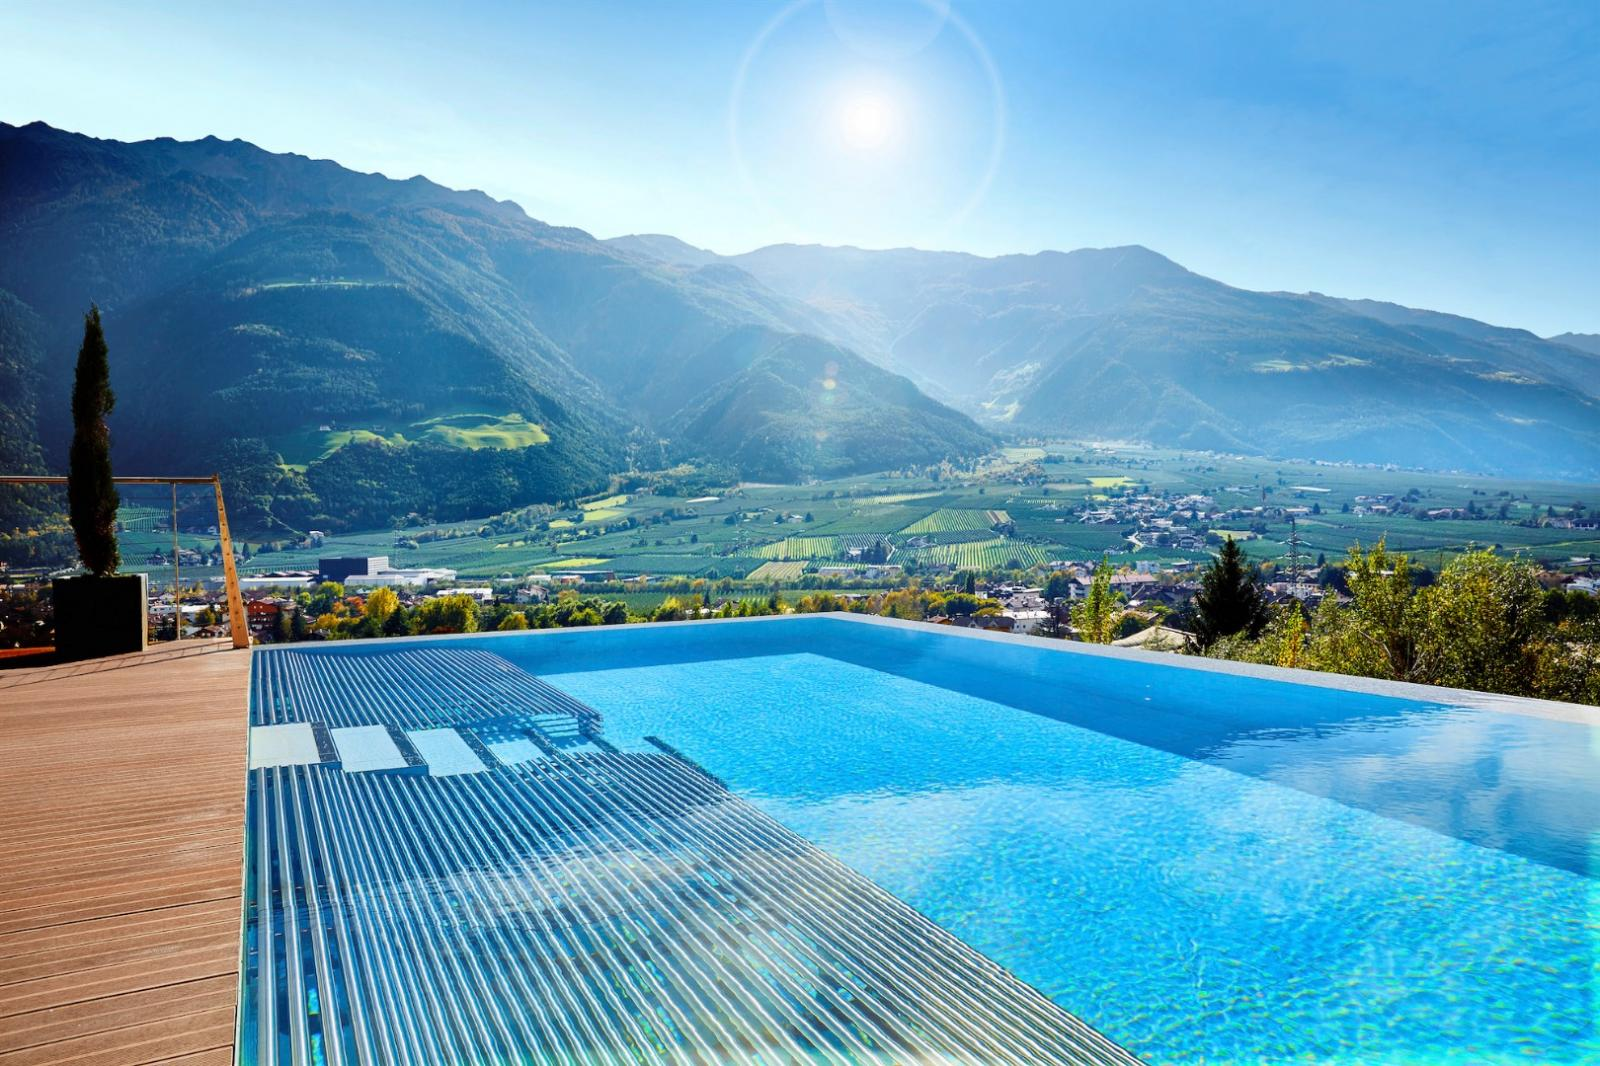 Hotel Mit Infinity Pool In Osterreich